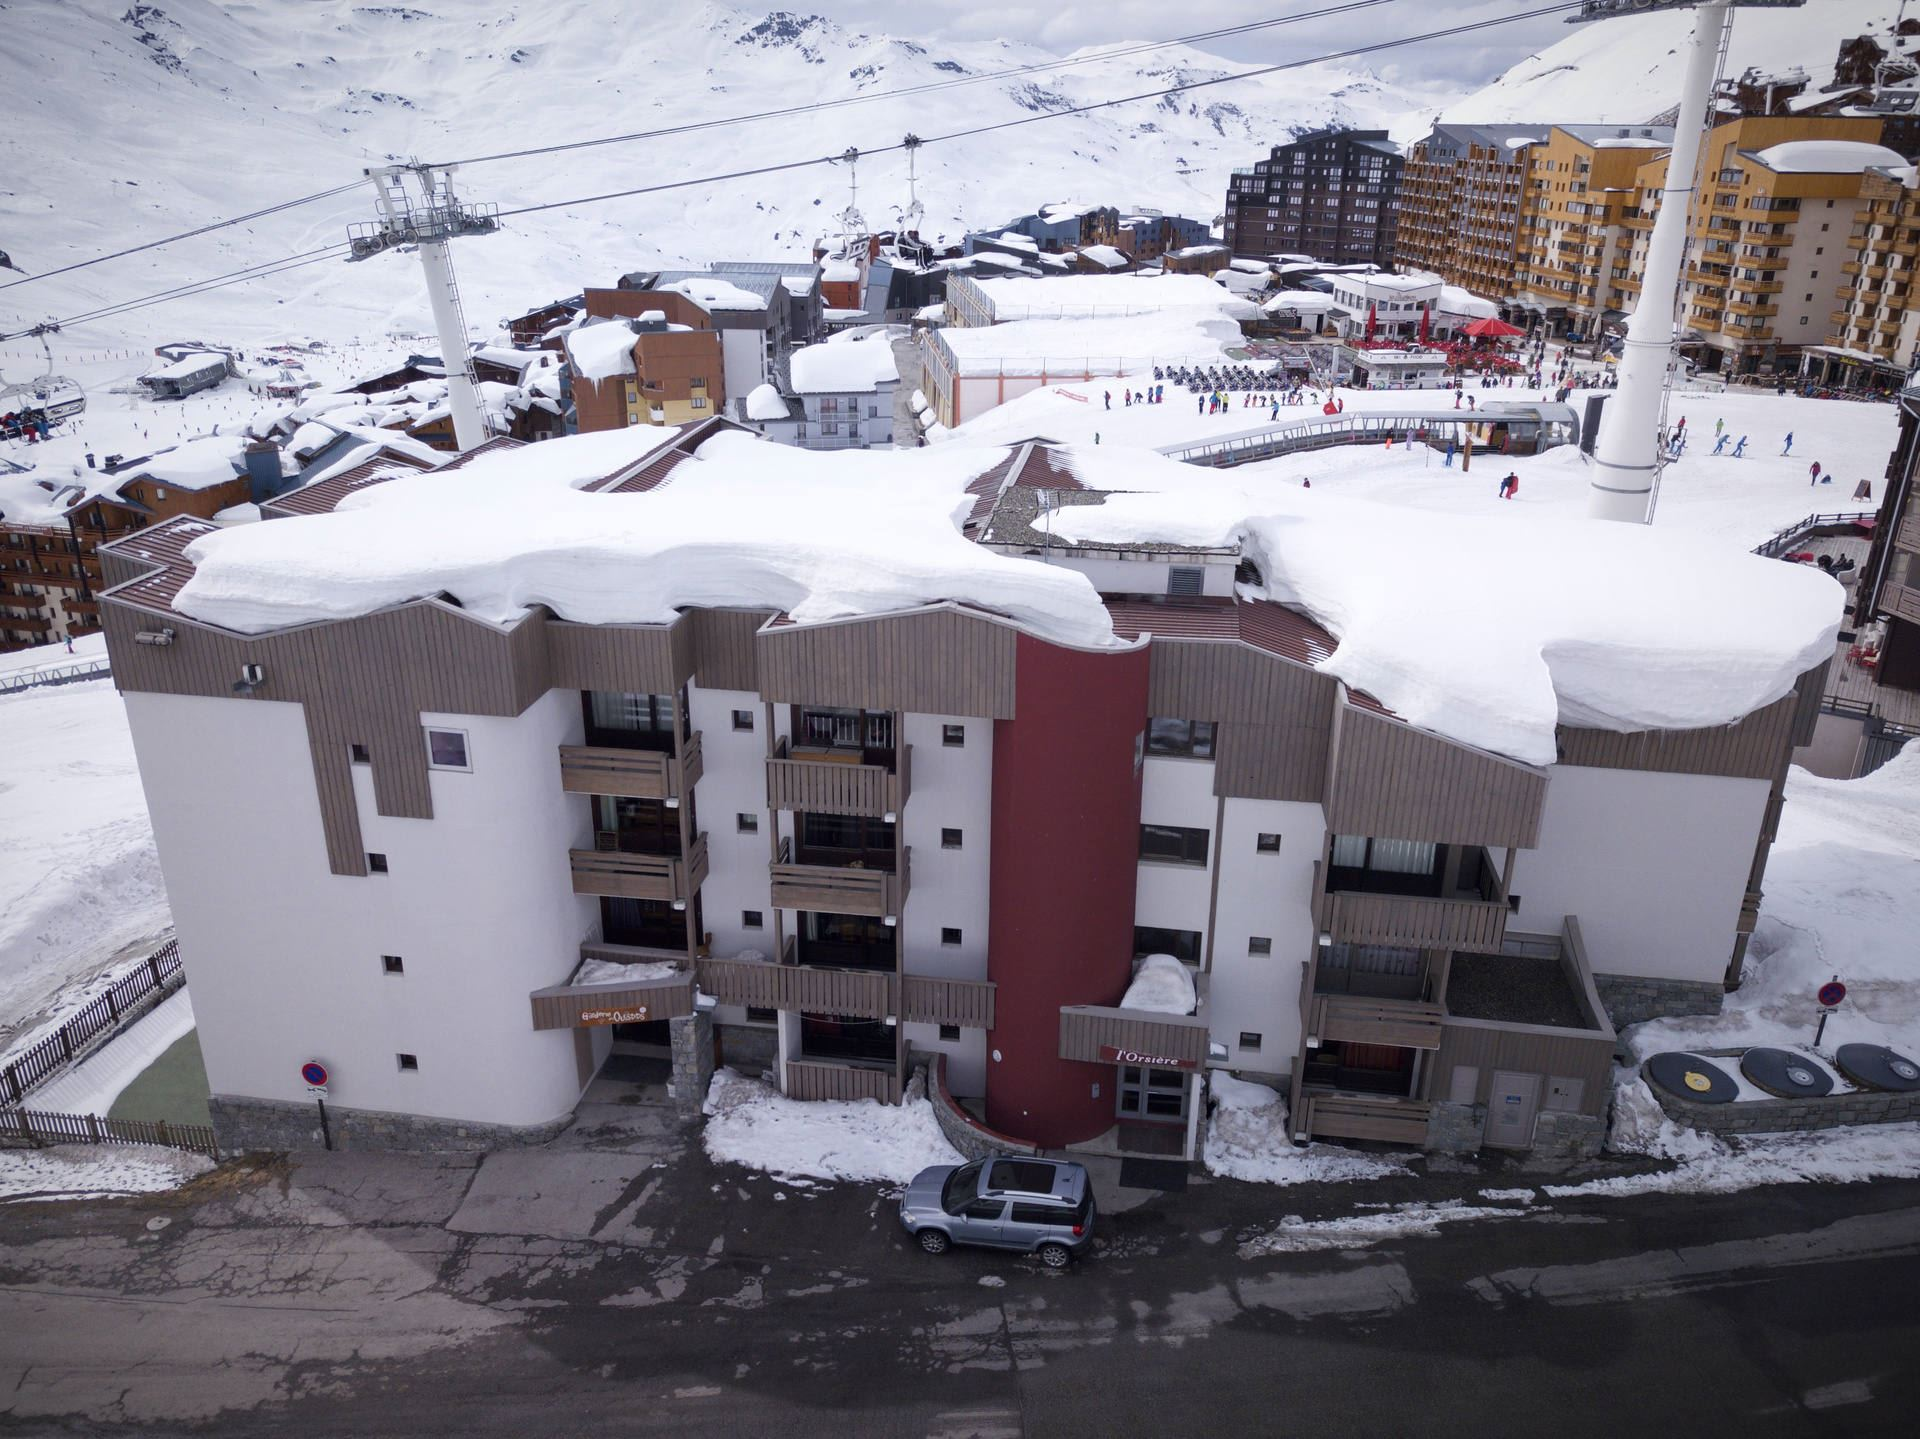 TROIS VALLEES 513 / 2 ROOMS 4 PEOPLE TYPE A COMFORT - 3 SNOWFLAKES SILVER - VTI